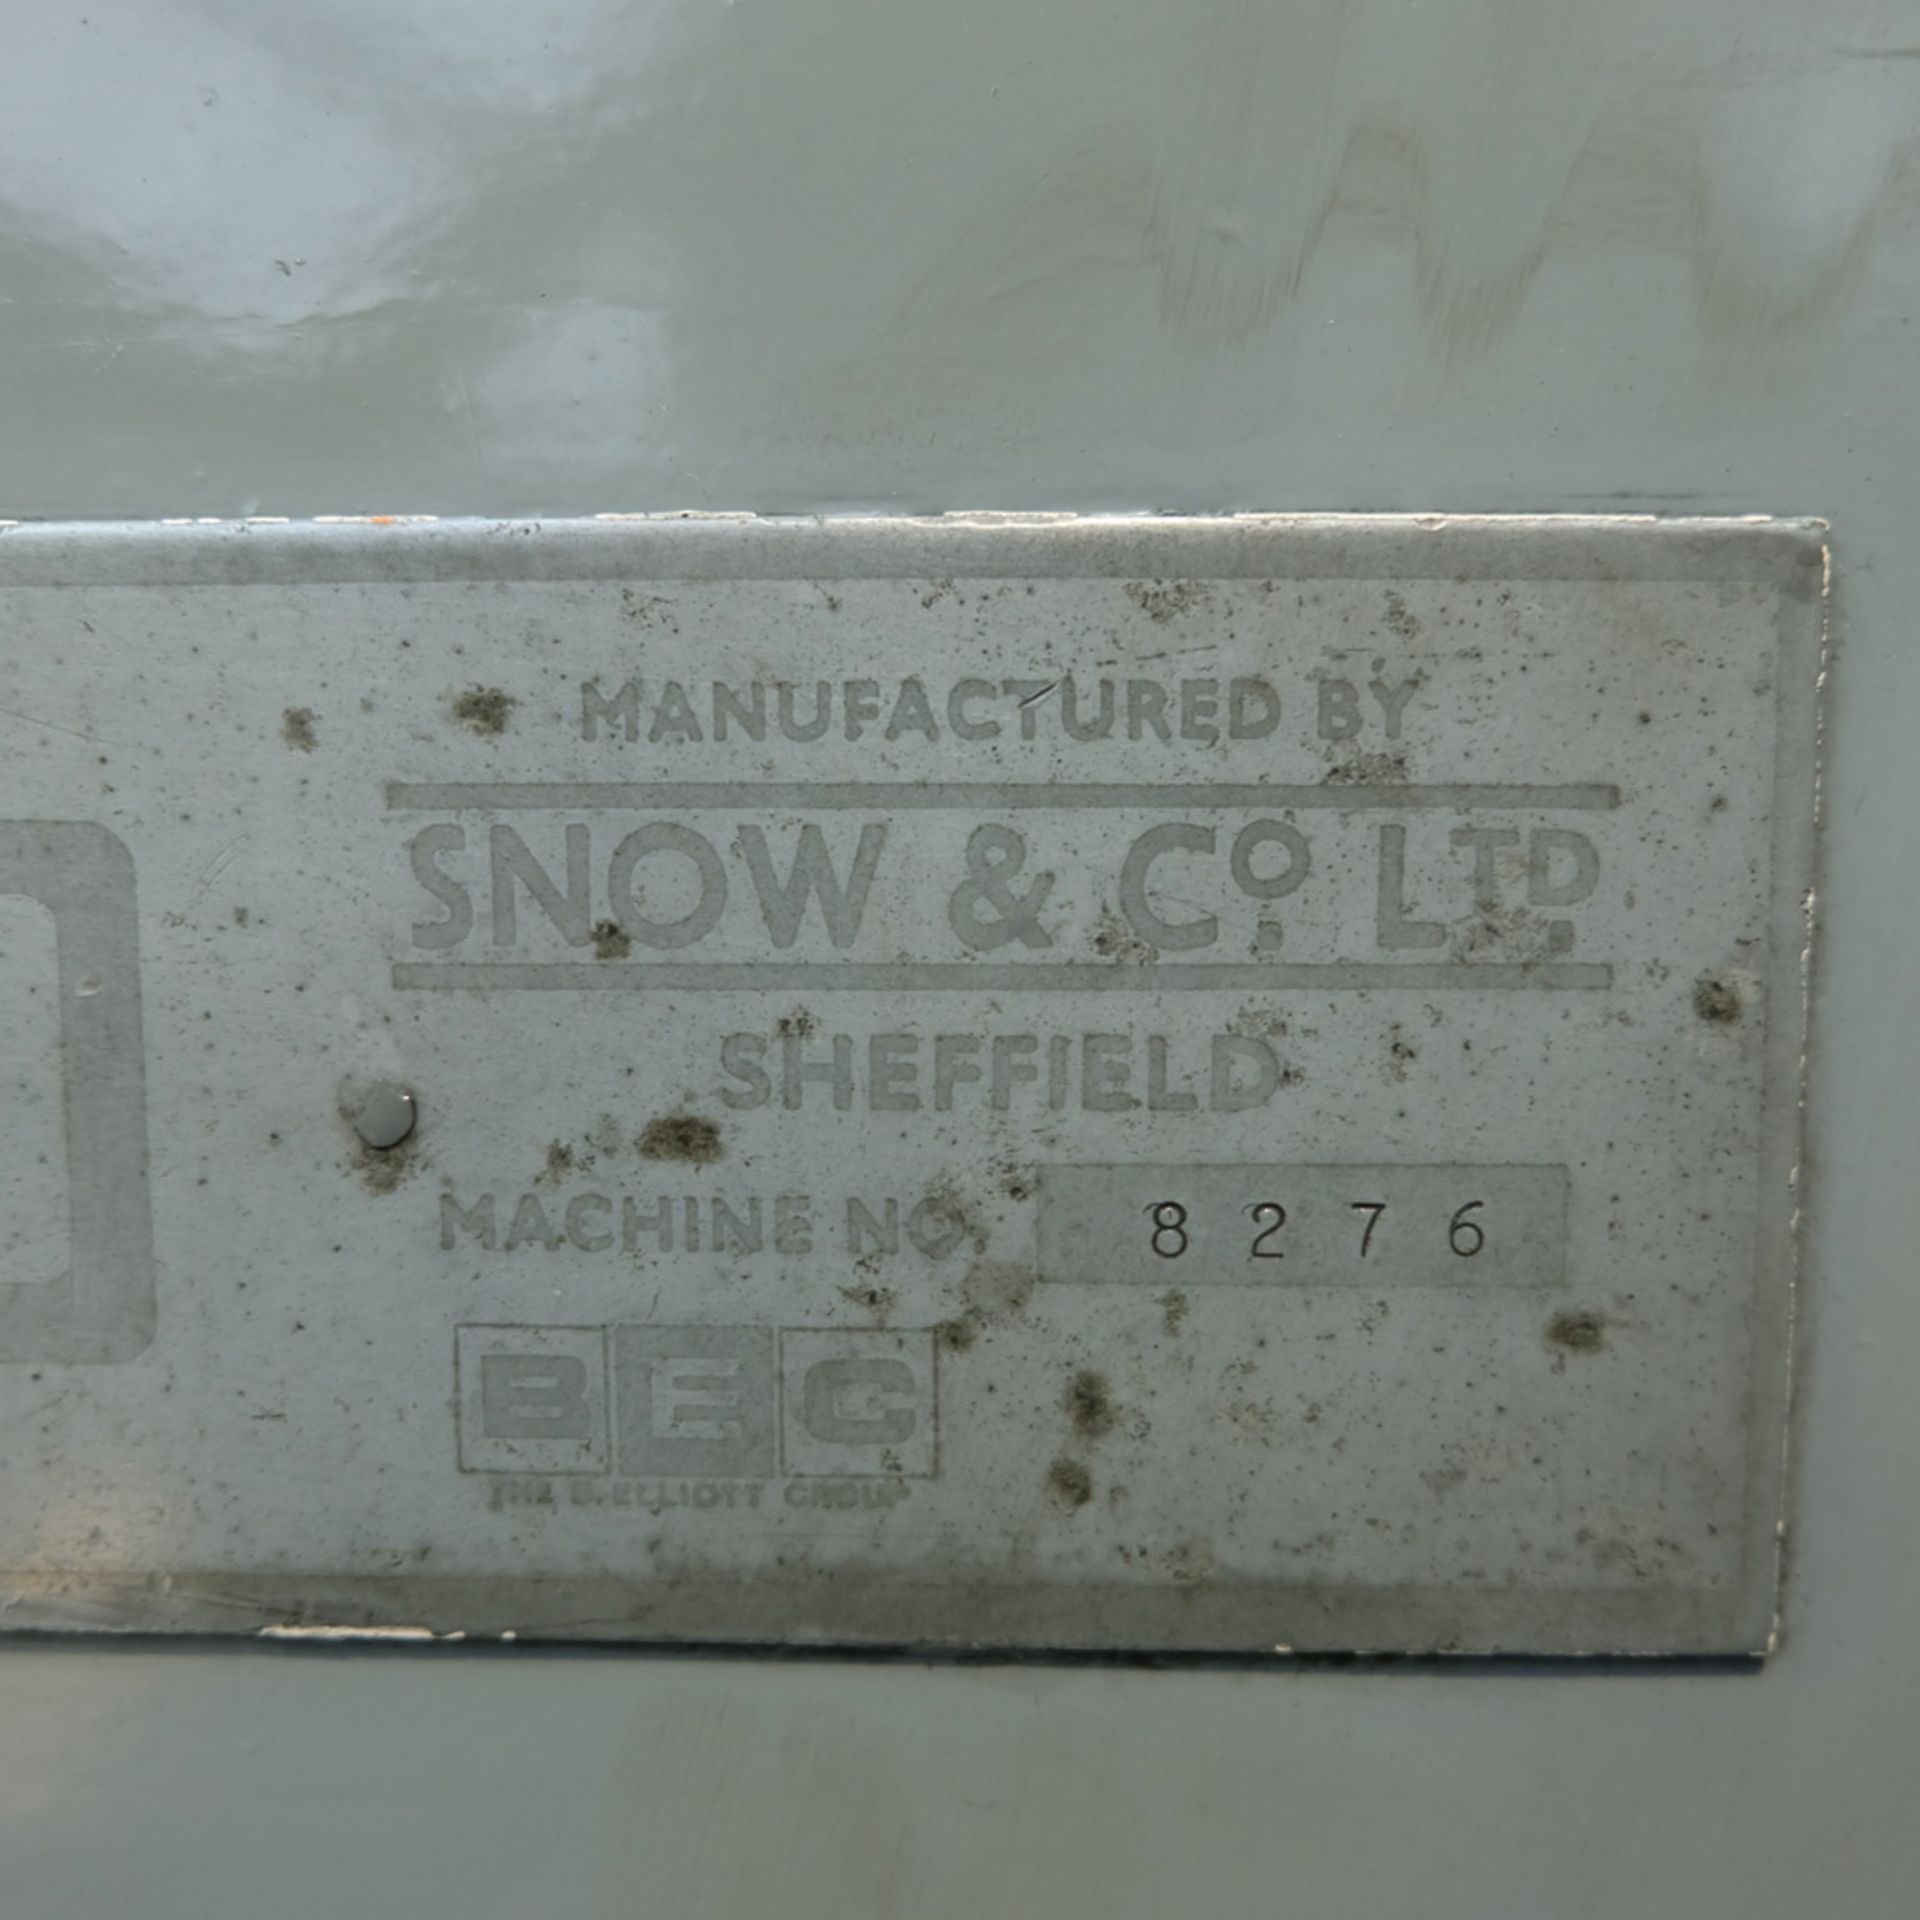 Snow Model RT 400 Ring Grinder. Table Size 400mm Diameter.Max Height Under Wheel 200mm. - Image 8 of 10